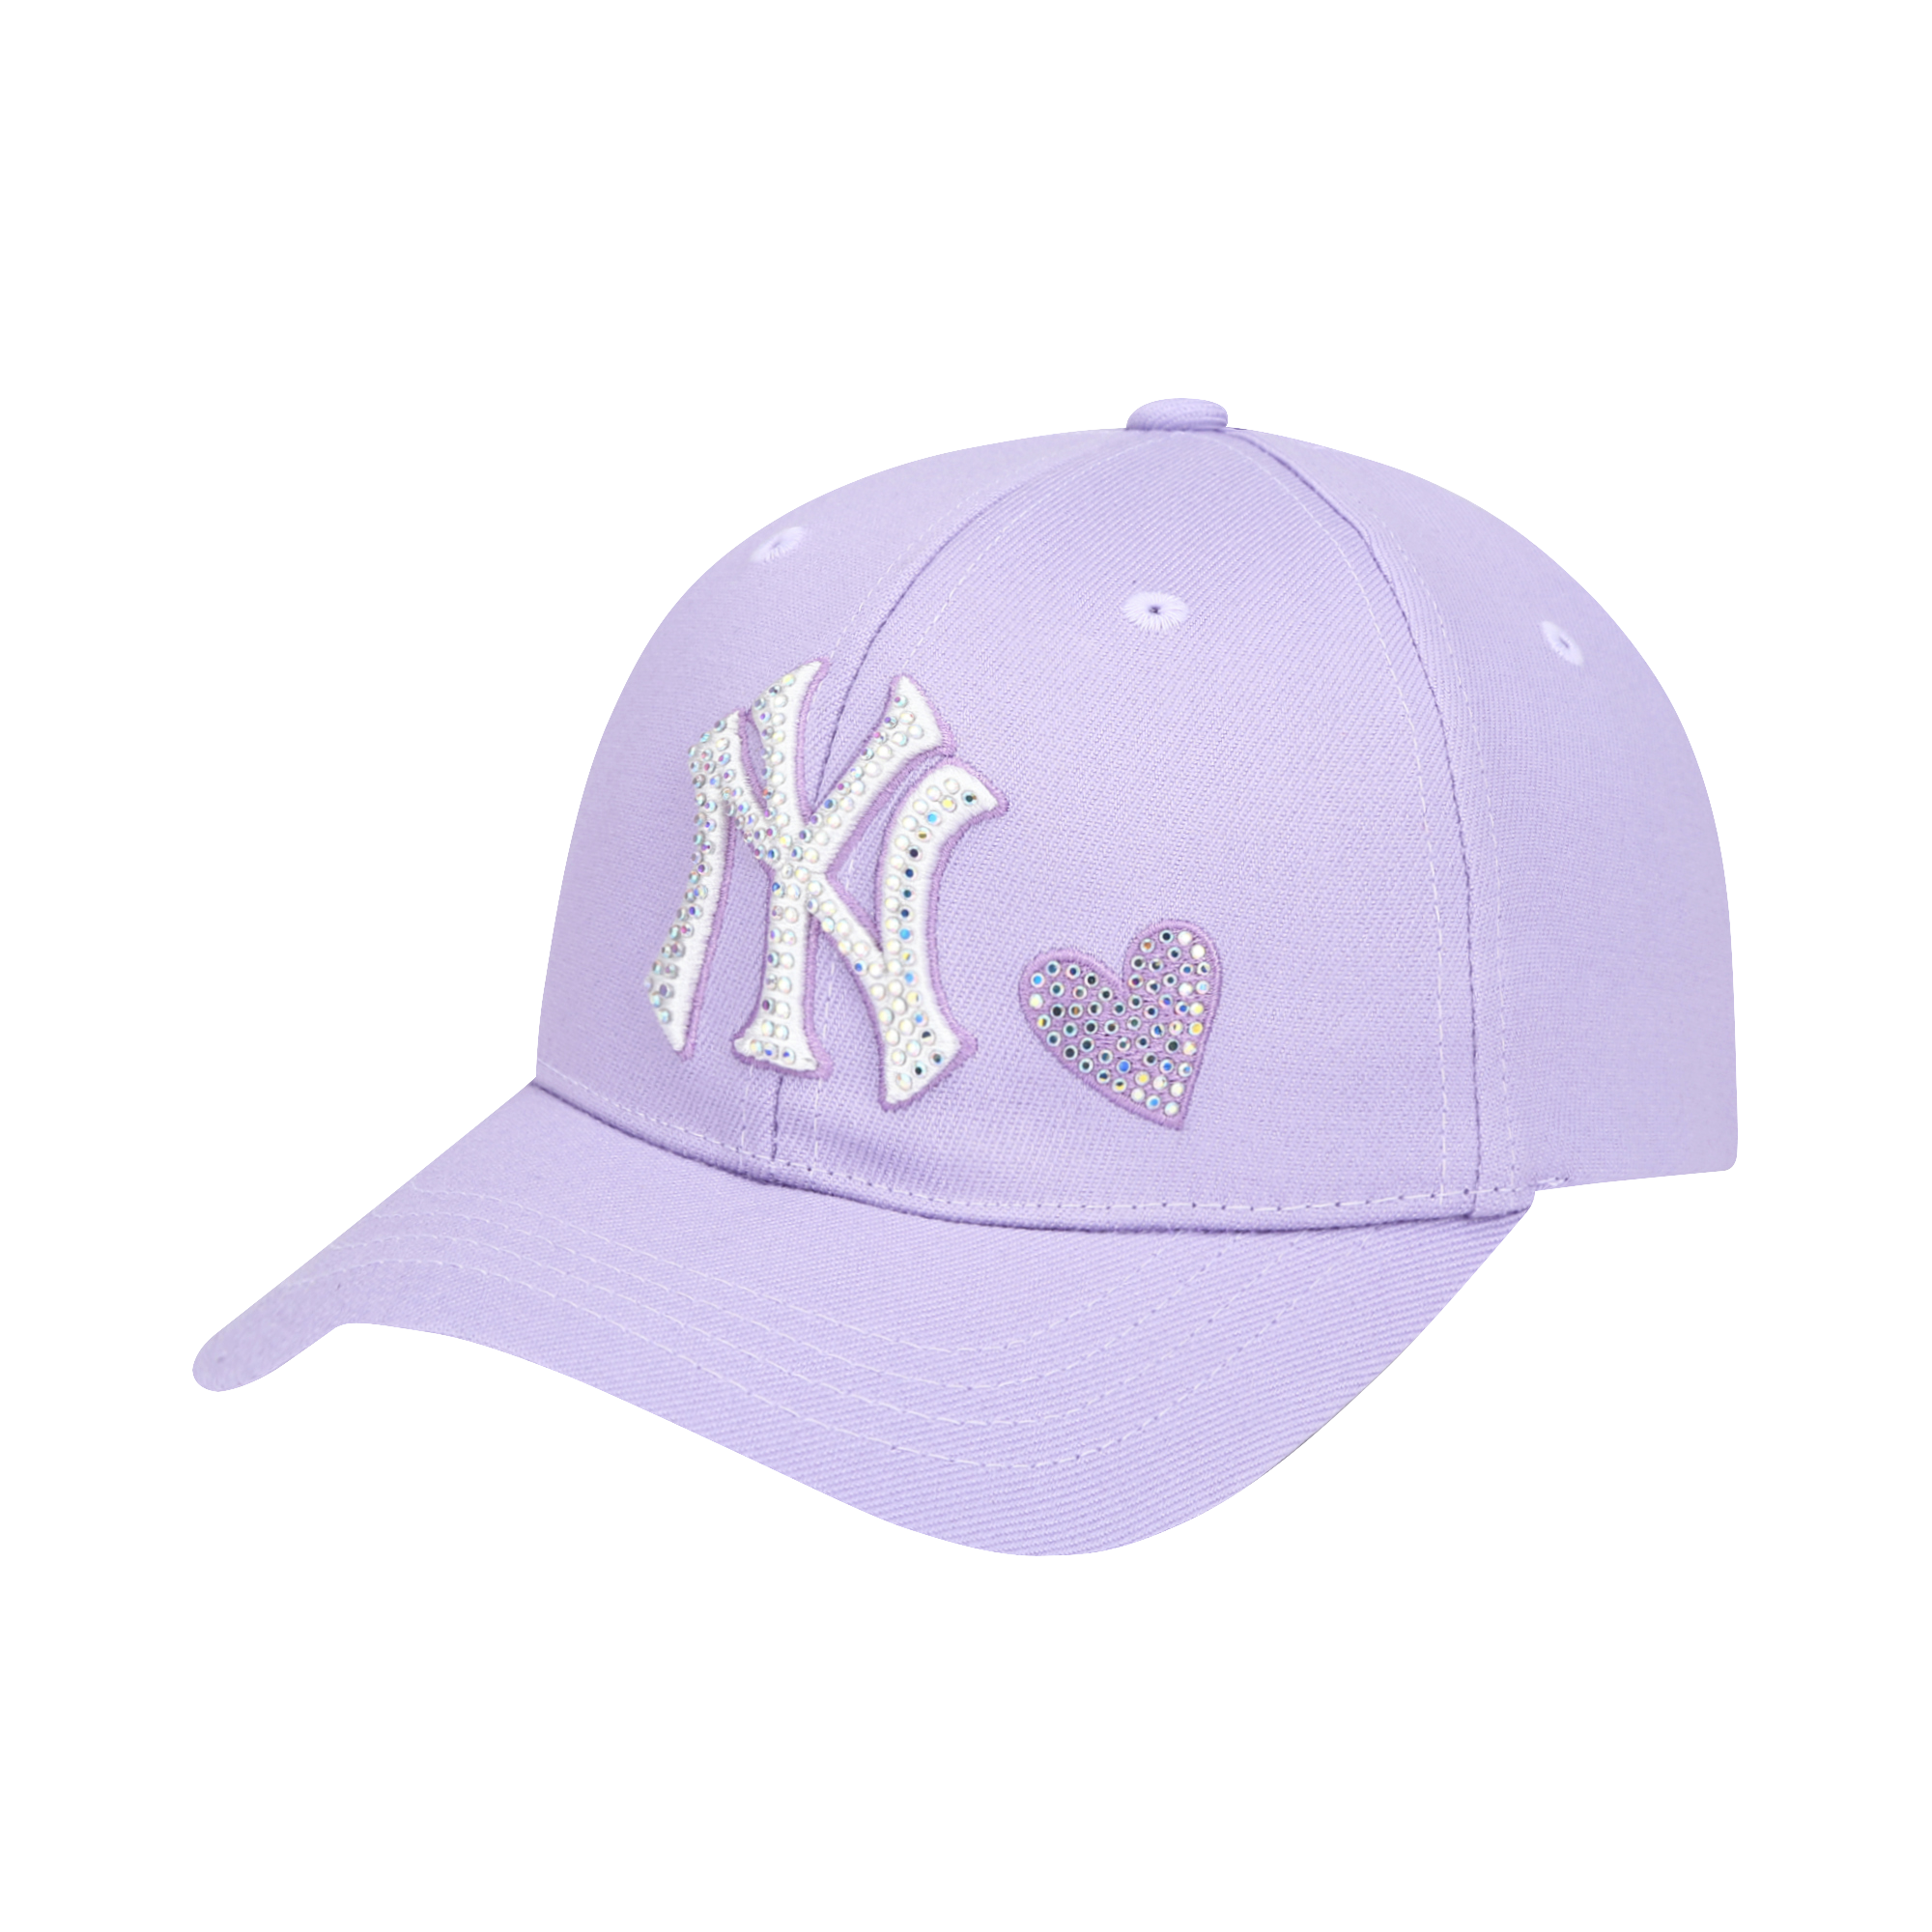 NEW YORK YANKEES SHINY HEART HOT-FIX CURVED CAP